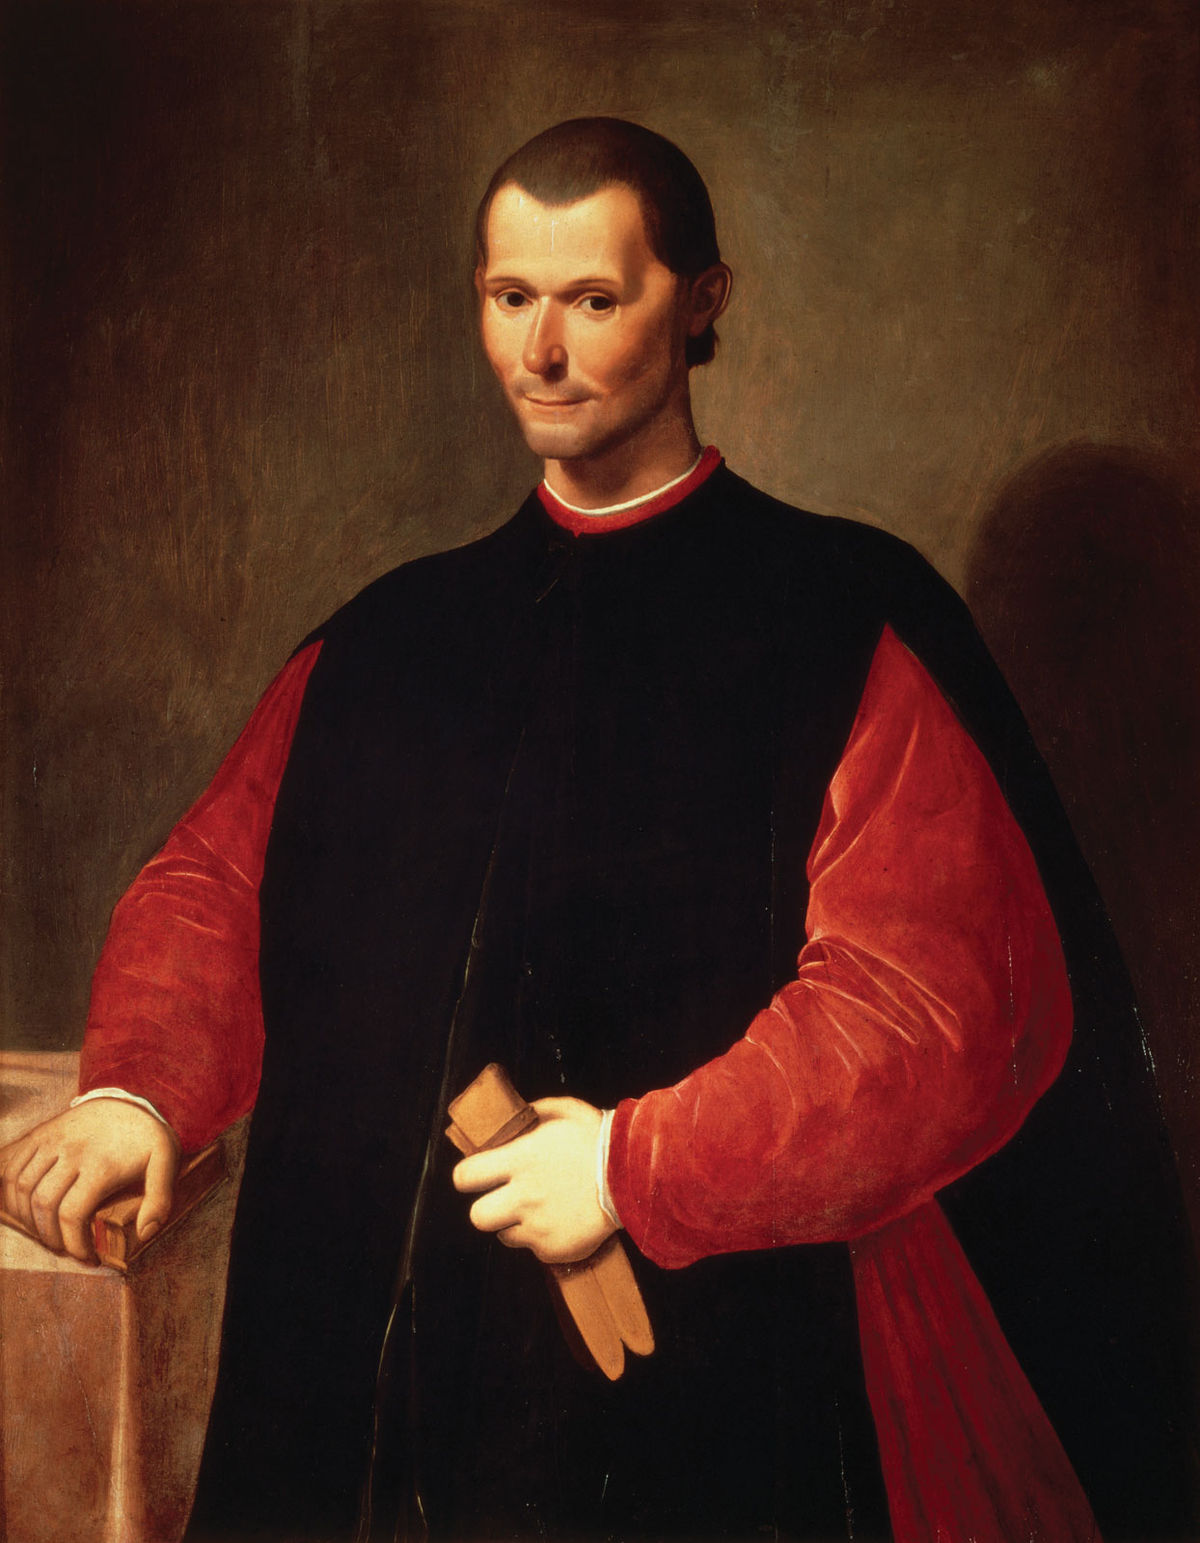 Niccolò Machiavelli - Wikipedia